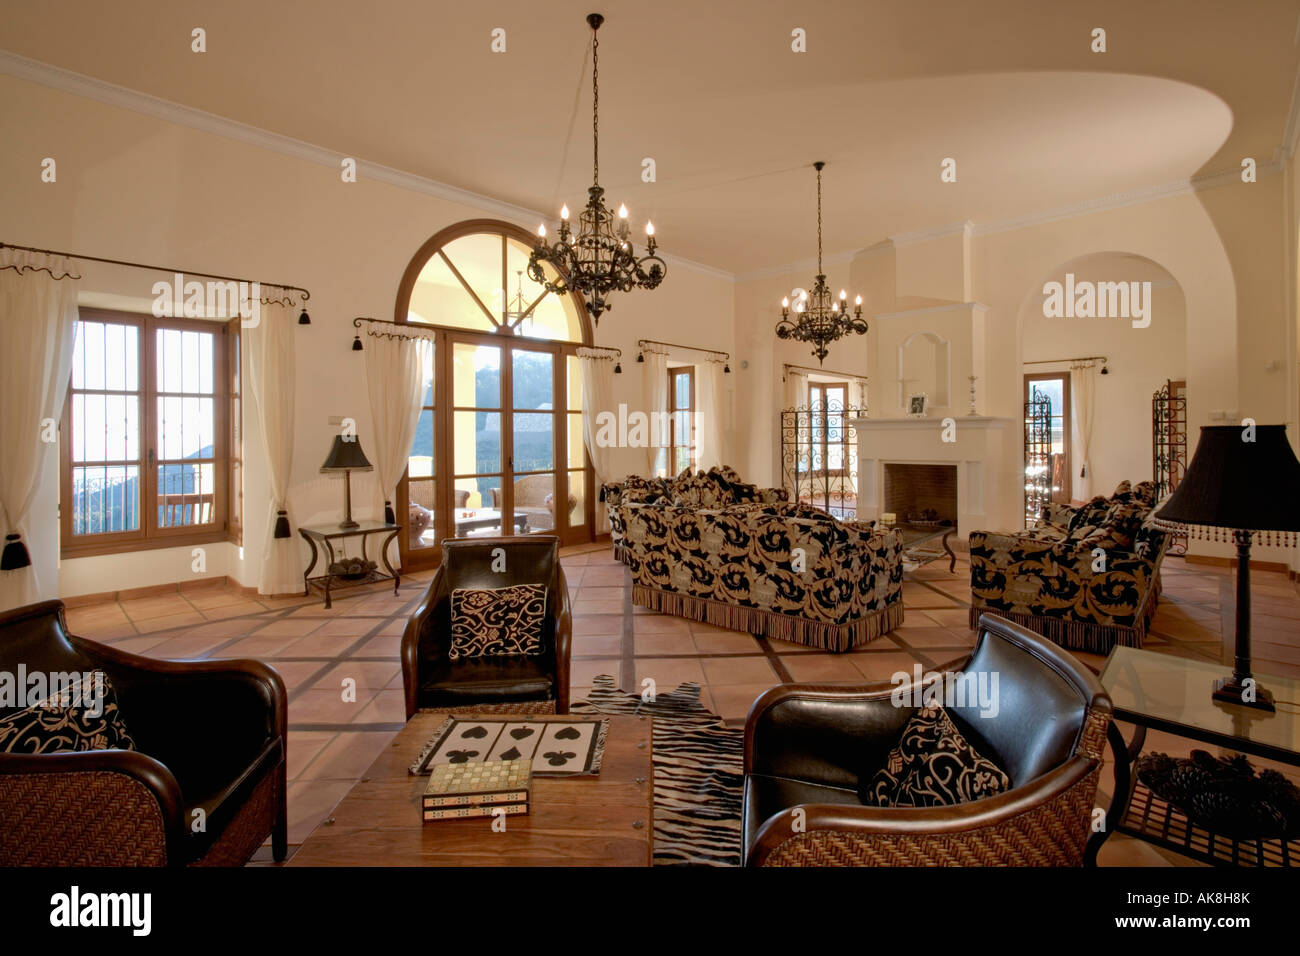 Leather Armchairs And Terracotta Tiled Floor In Large Living Room In Spanish  Villa